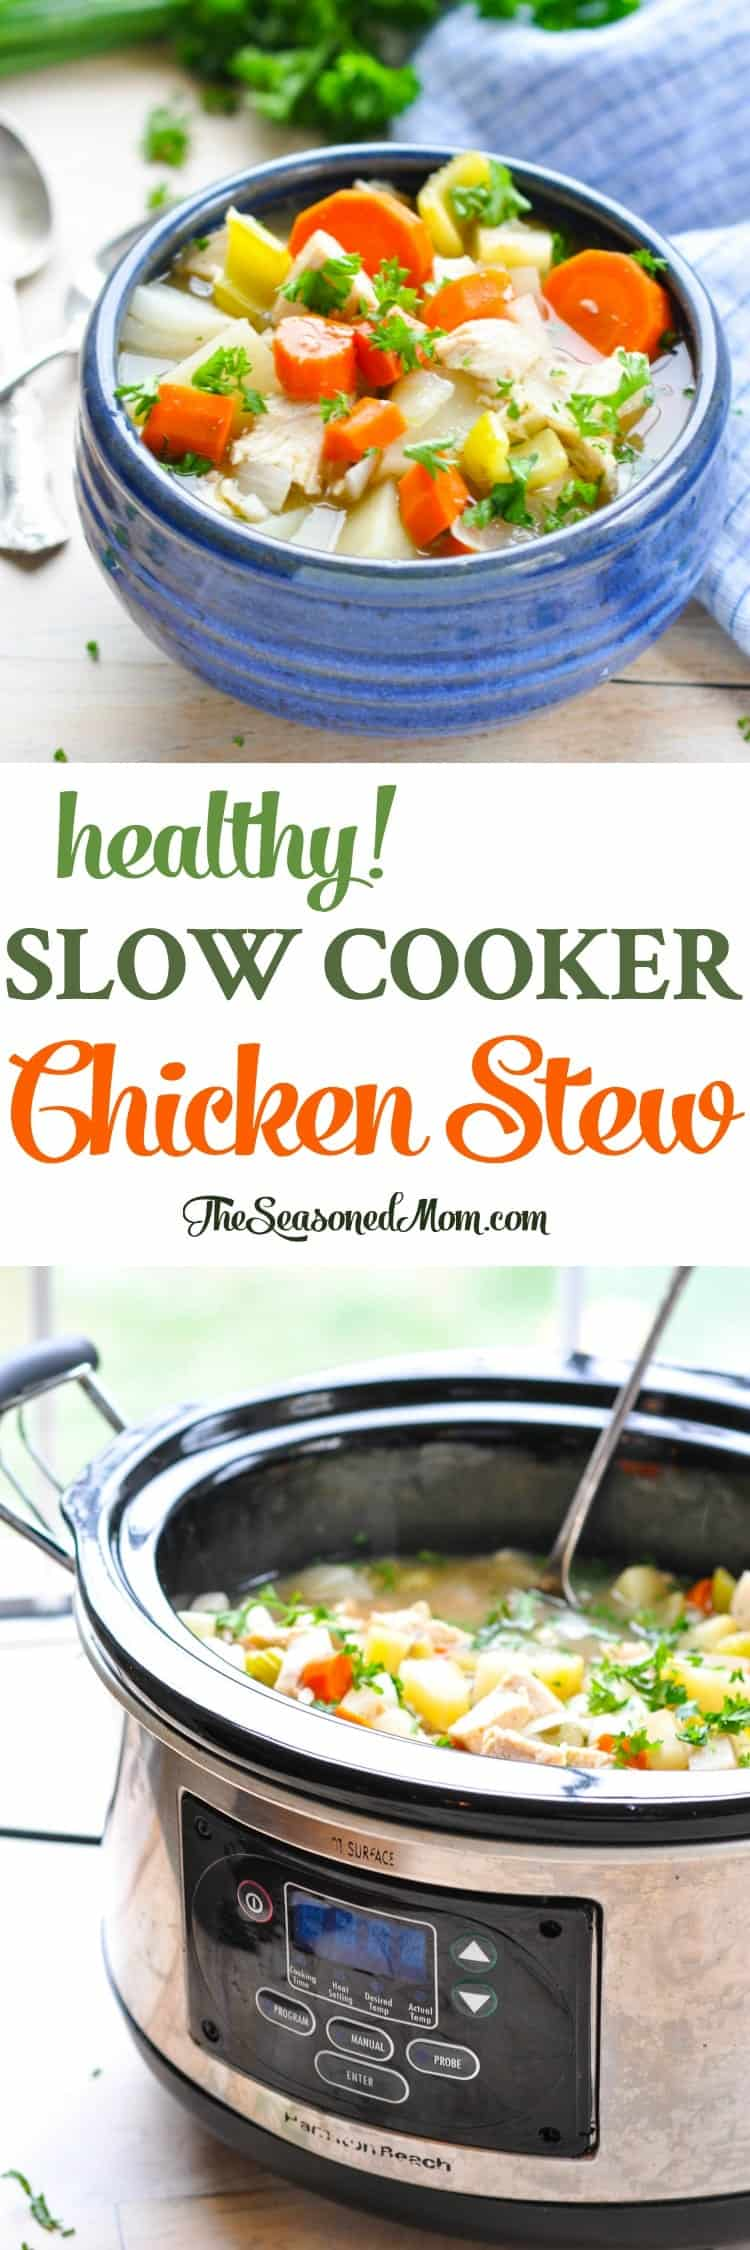 This Healthy Slow Cooker Chicken Stew is an easy dinner recipe that's also low calorie and high in protein to help you feel nourished and well! Chicken Breast Recipes | Slow Cooker Recipes | Slow Cooker Chicken | Healthy Dinner Recipes #healthy #slowcooker #chicken #dinner